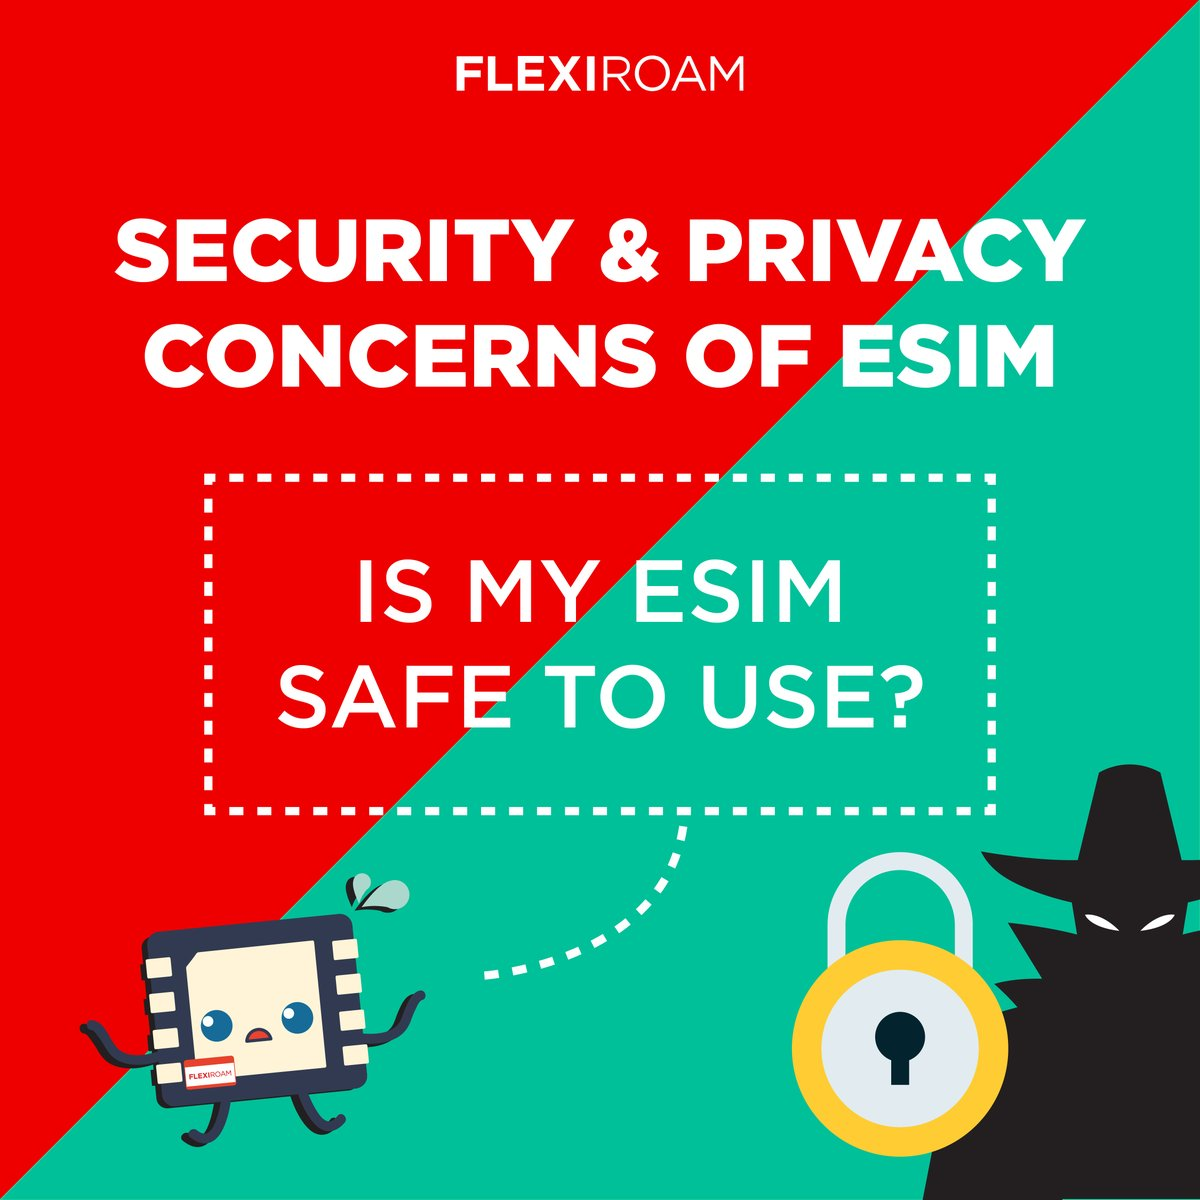 New form of innovation sometimes left us wondering about its security. The same goes for eSIM.  eSIMie is here to address the security and privacy concerns about eSIM.  Read more to find out!👇  #FLEXIROAMeSIMie https://t.co/aQQG08FbrE